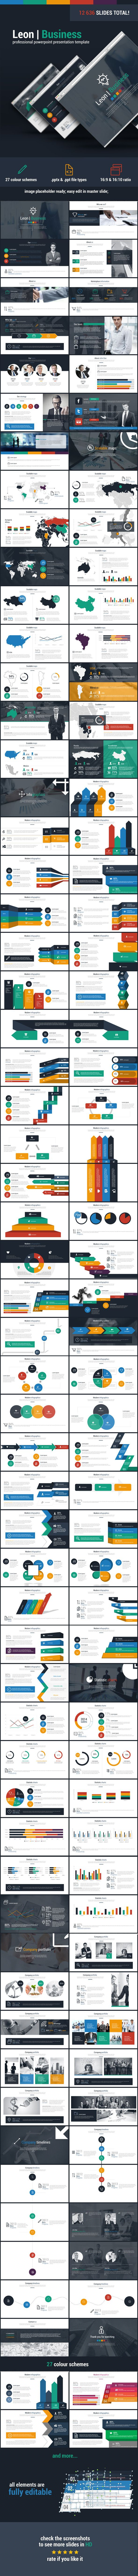 Leon Business Powerpoint Presentation Template | Download: http://graphicriver.net/item/leon-business-powerpoint-presentation-template/11084650?ref=ksioks